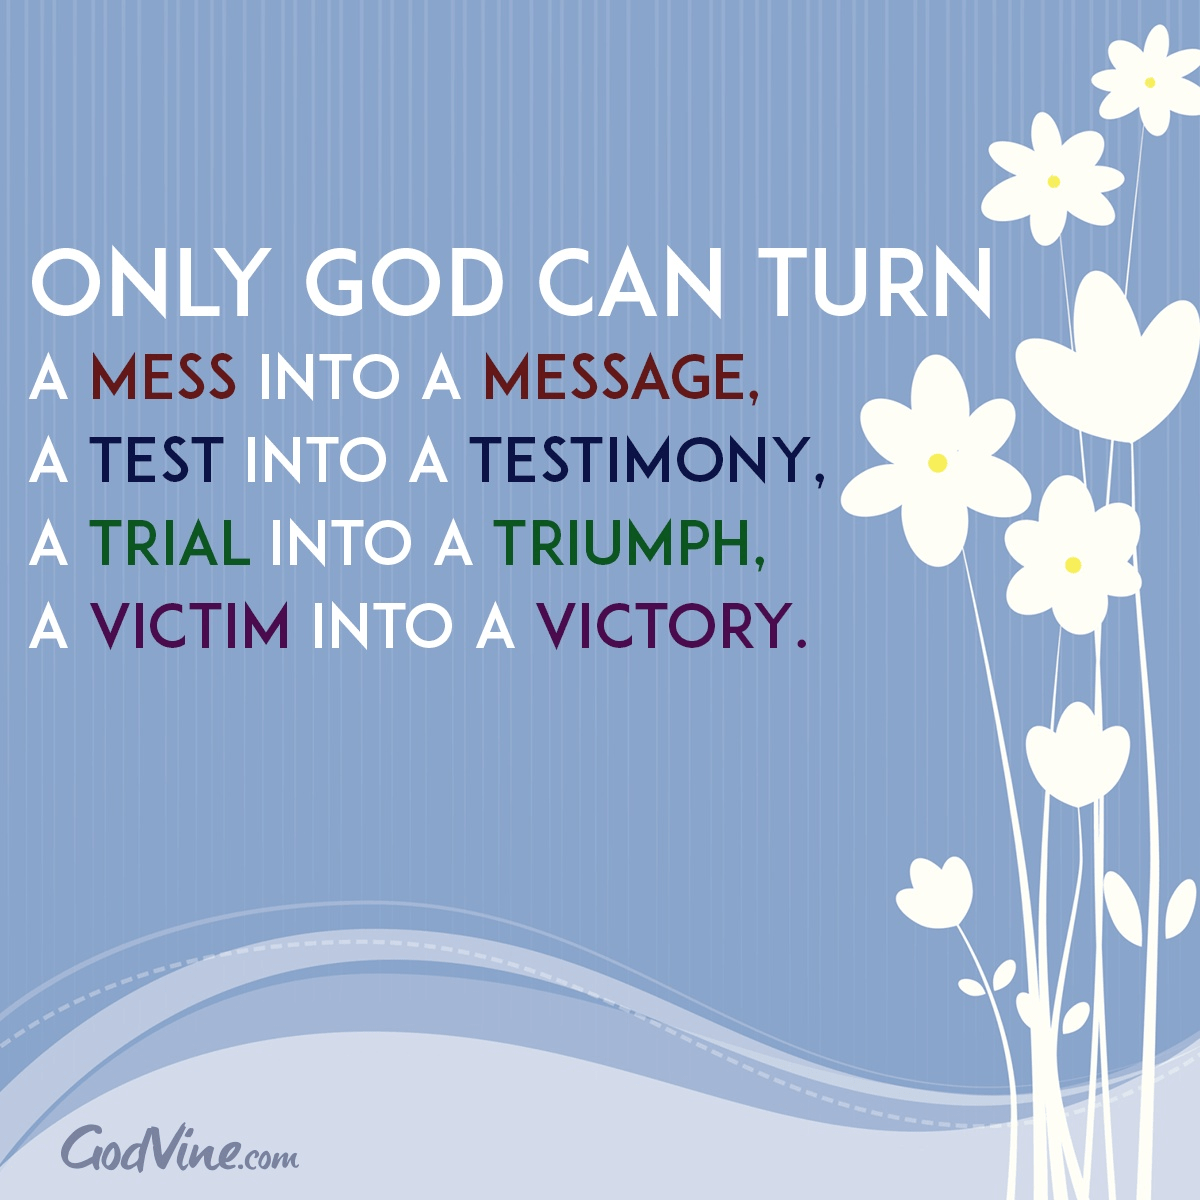 Only God Can Turn a Test into a Testimony